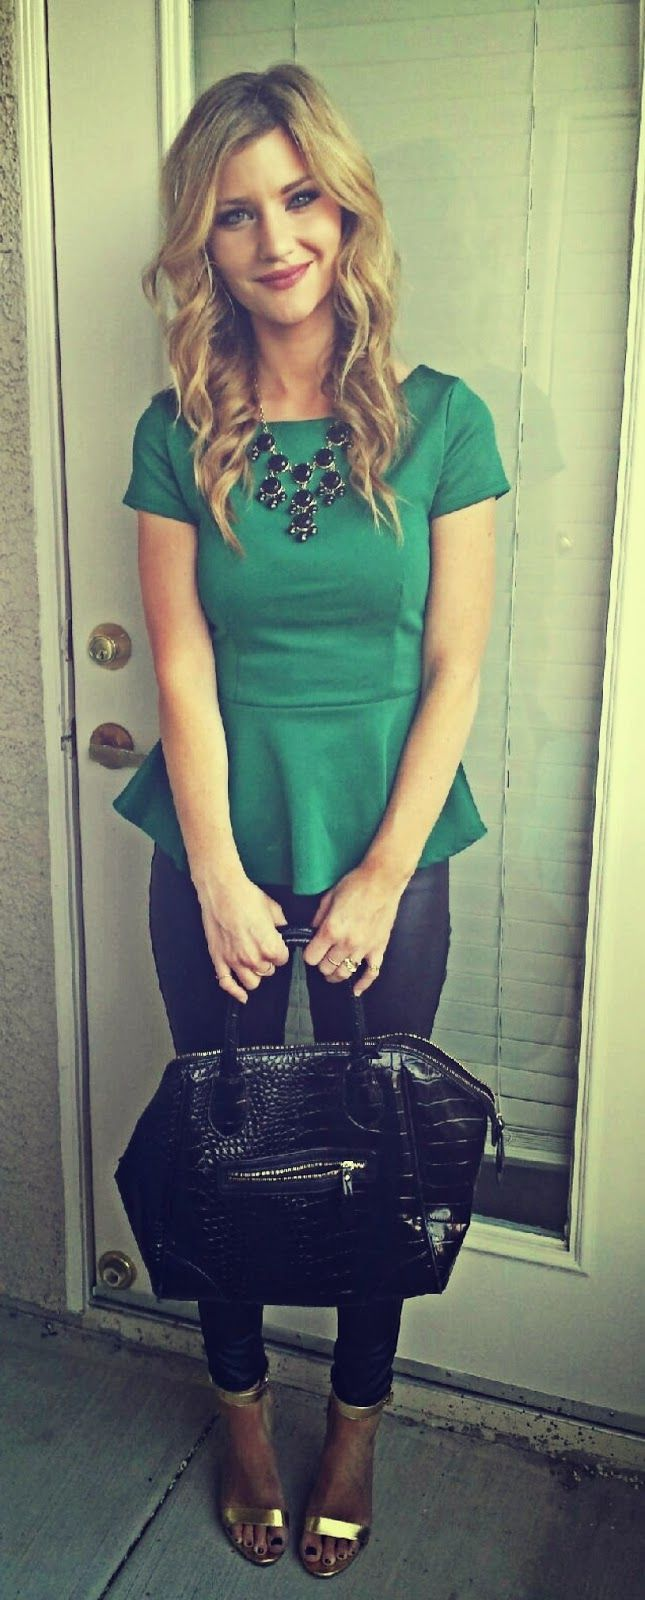 St. Patrick's Day outfit for date night or work